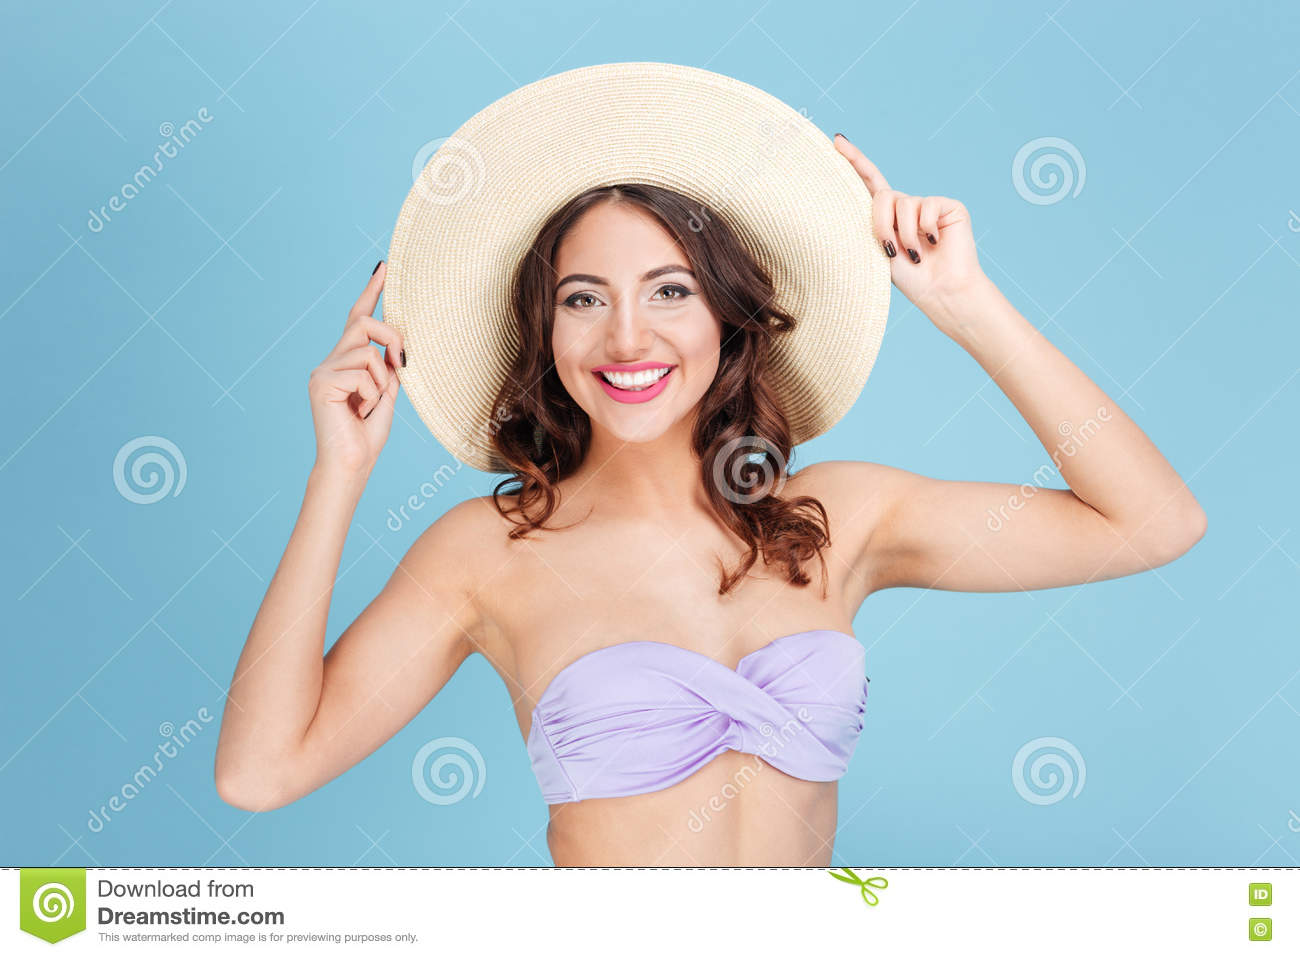 00d18a10705bf Close-up portrait of a cheerful pretty girl in a beach hat and swimsuit  isolated on the blue background